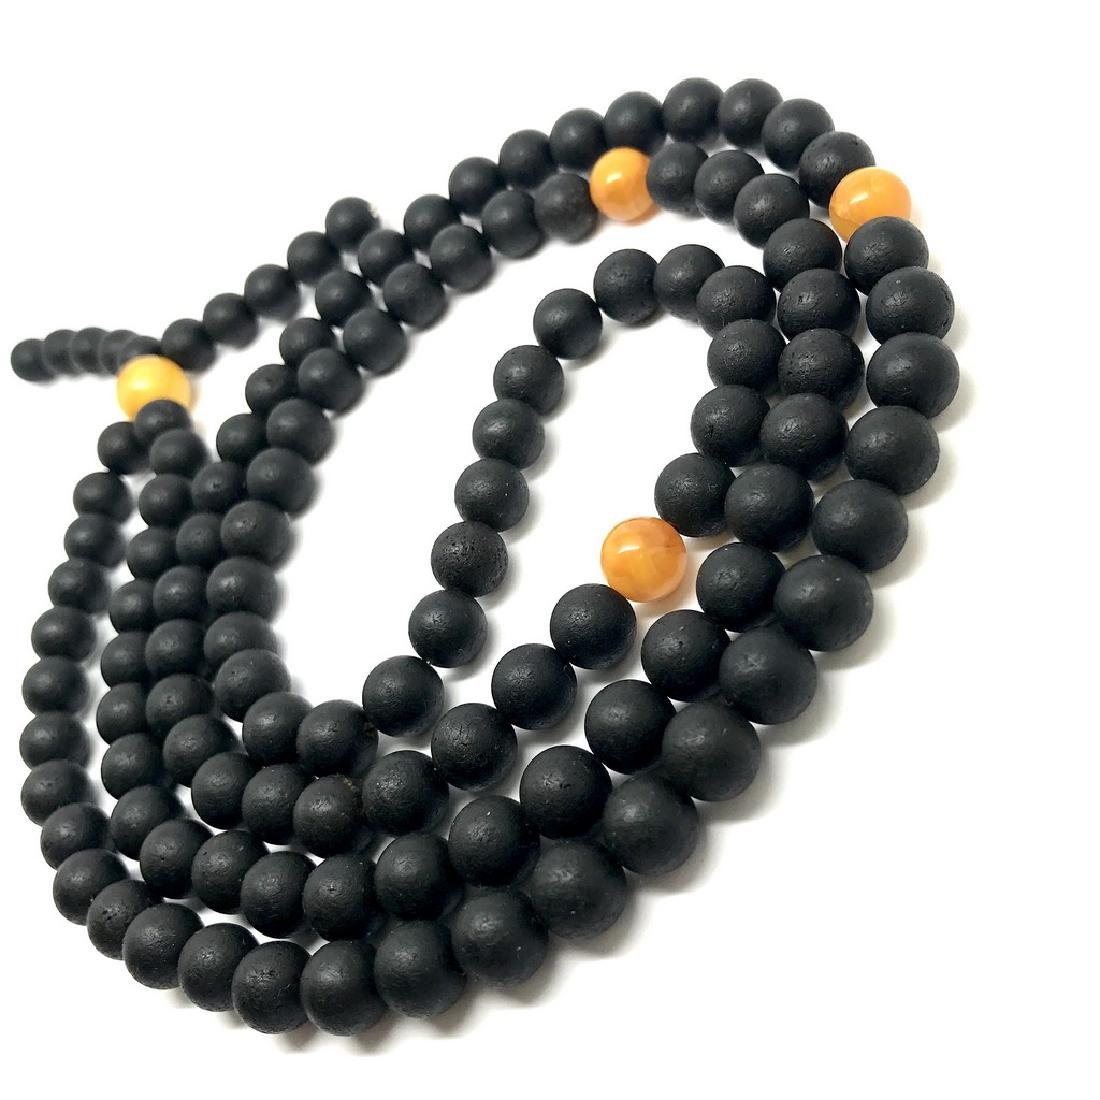 Japa mala luck necklace old Baltic amber beads - 2